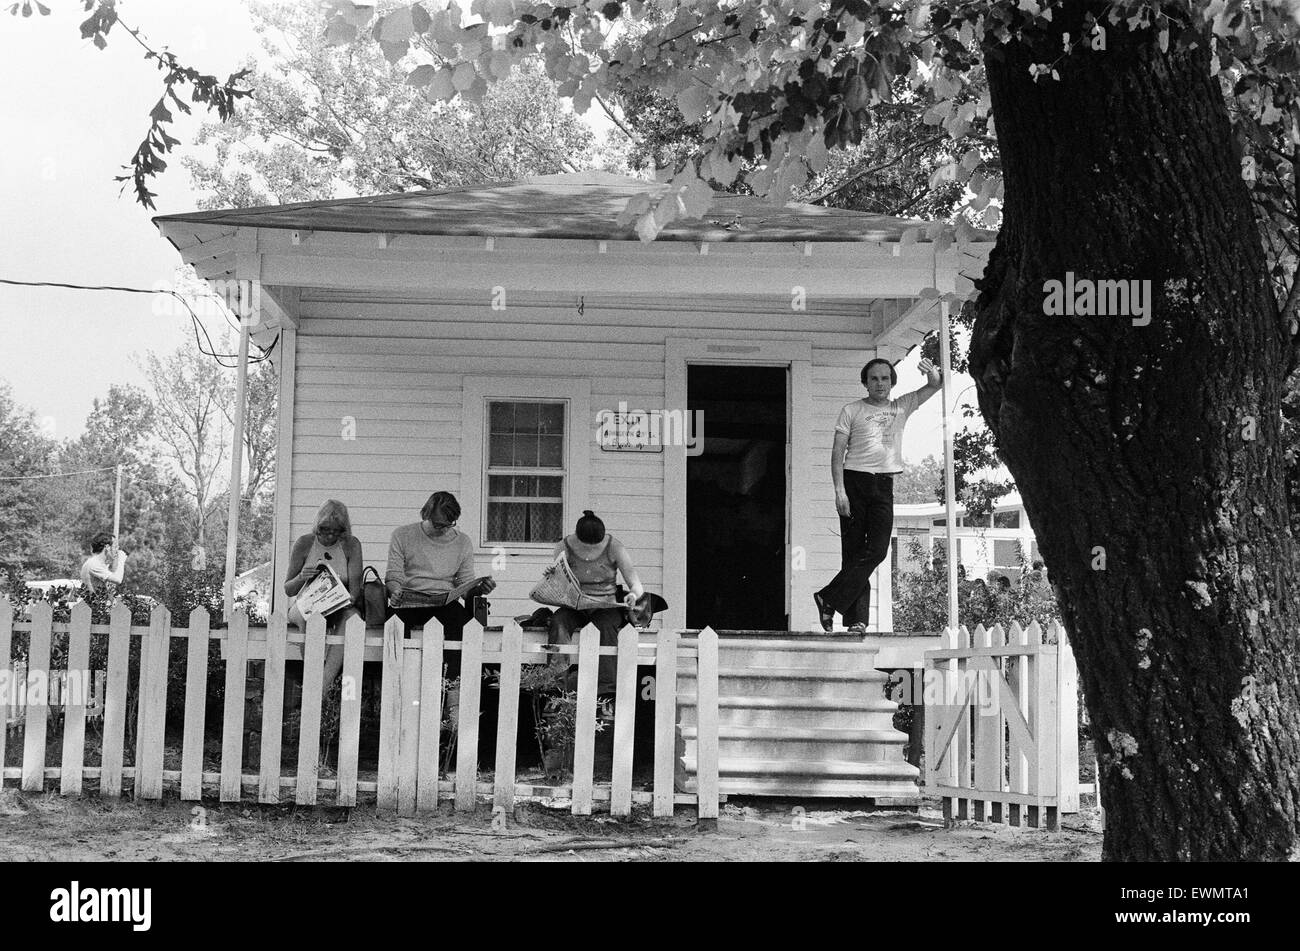 Elvis Presley Fans, visit the birthplace and home of their idol in Tupelo, Lee County, Mississippi, USA, 27th August - Stock Image